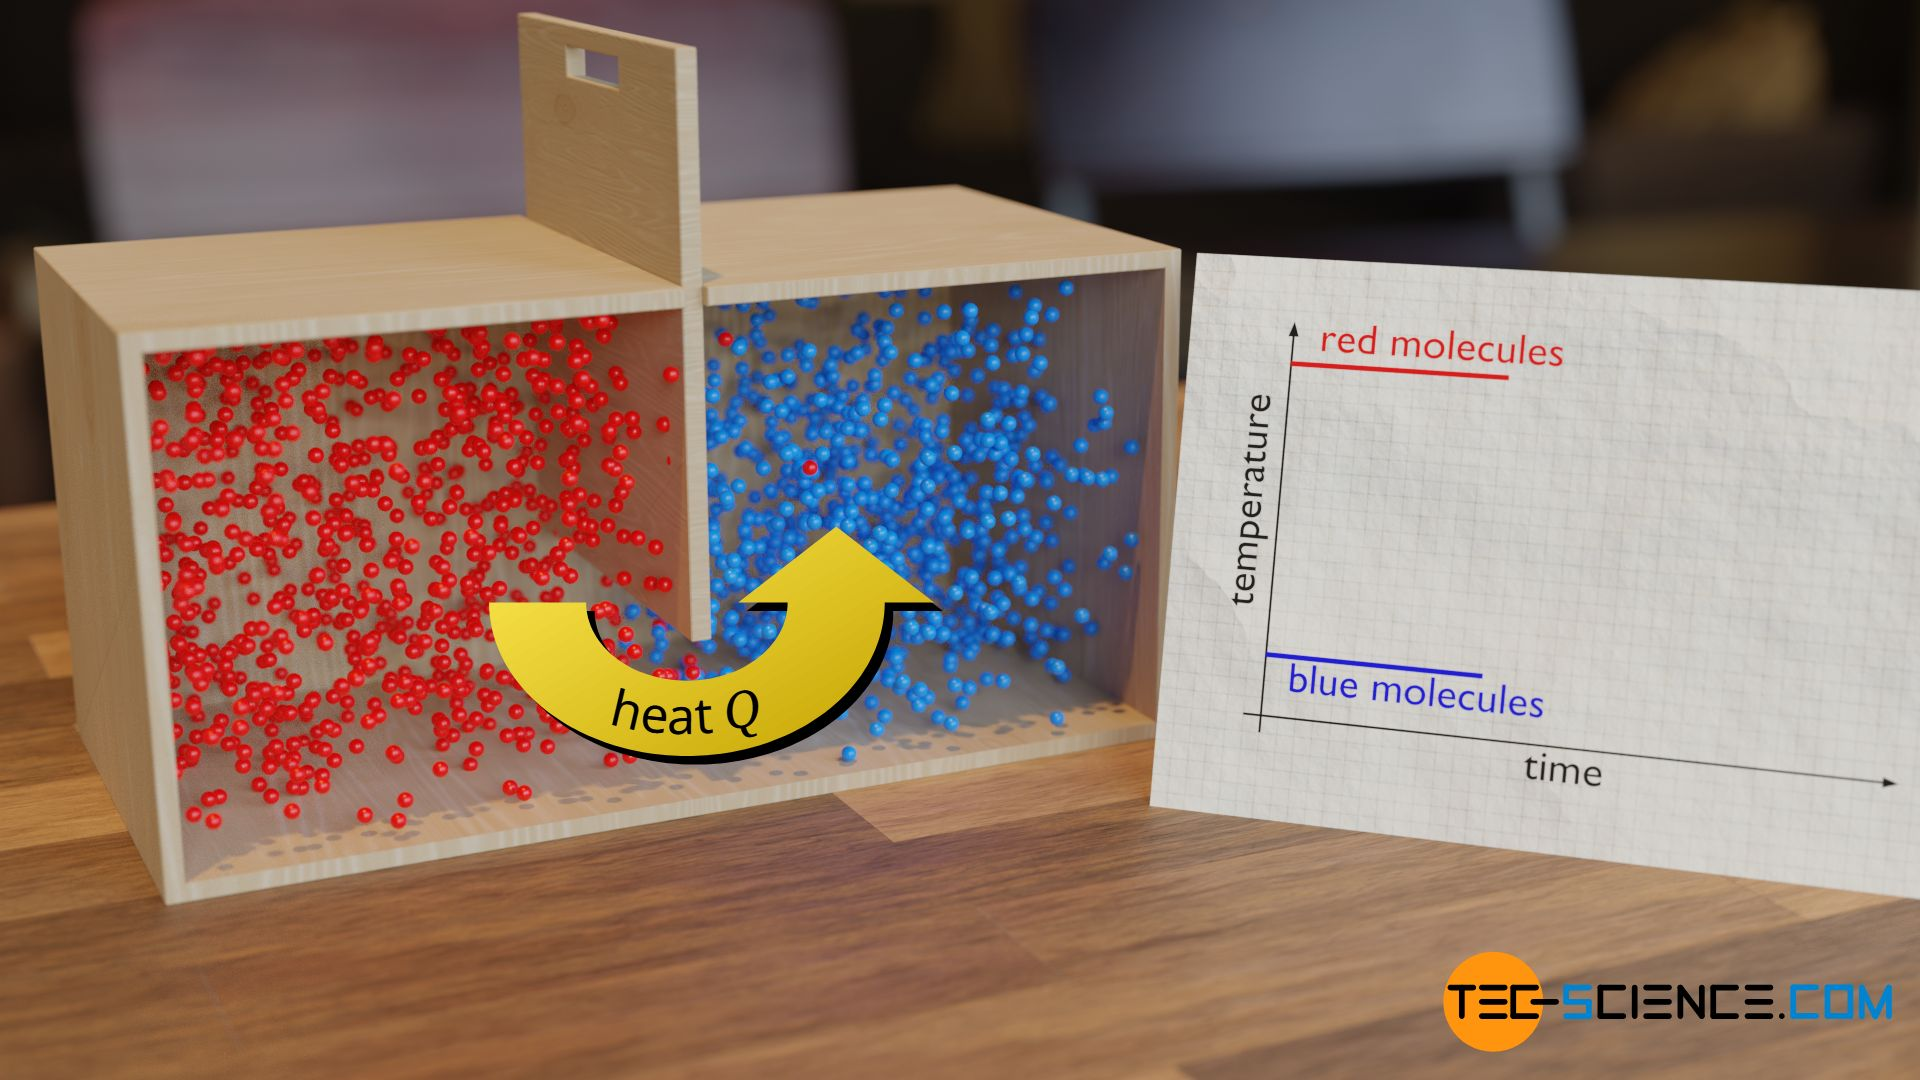 Heat as transferred energy from a hotter material to a cooler material